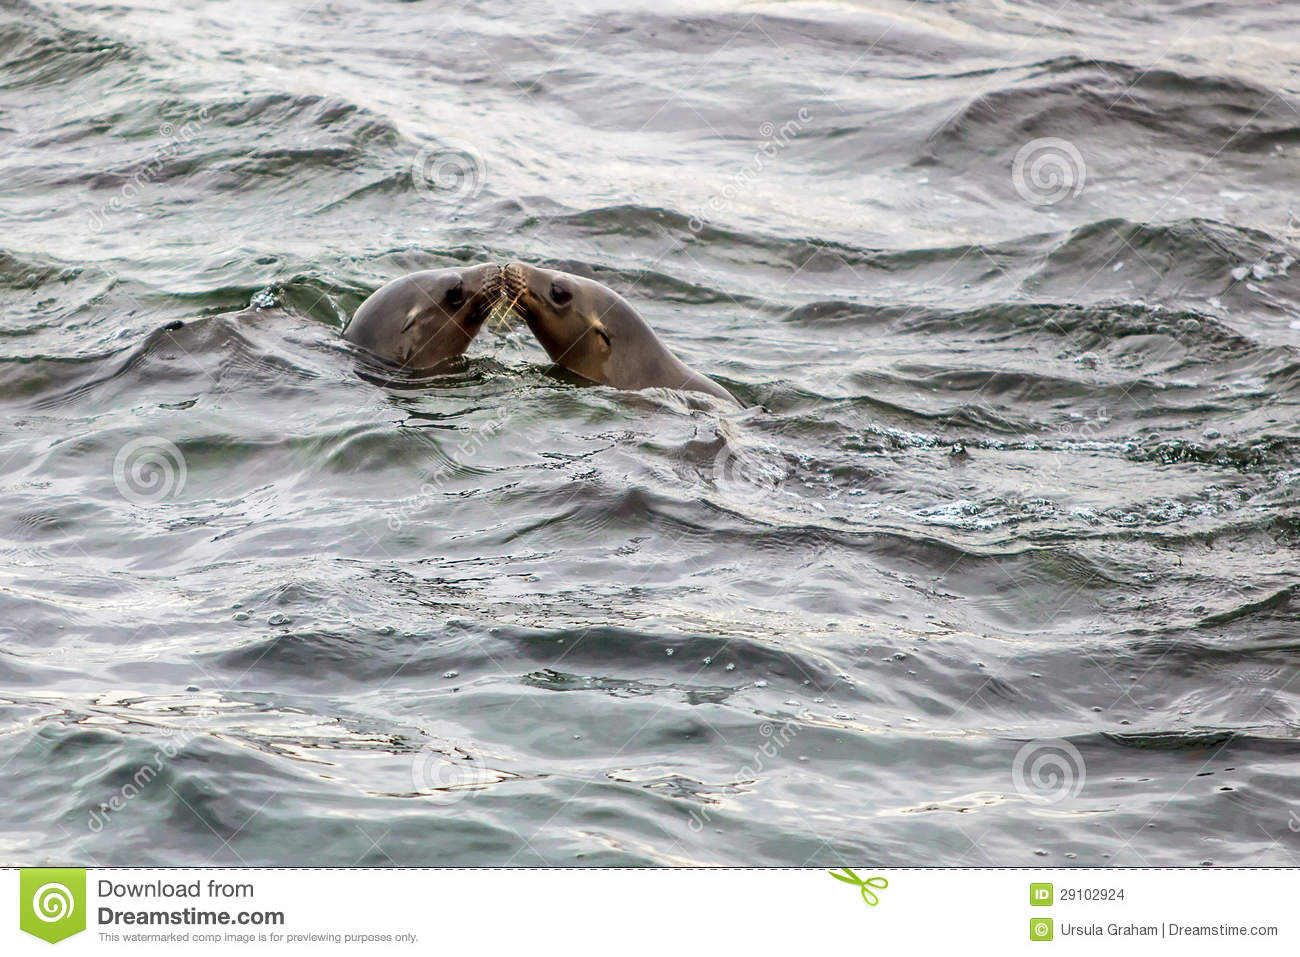 Seals Kissing in the Ocean